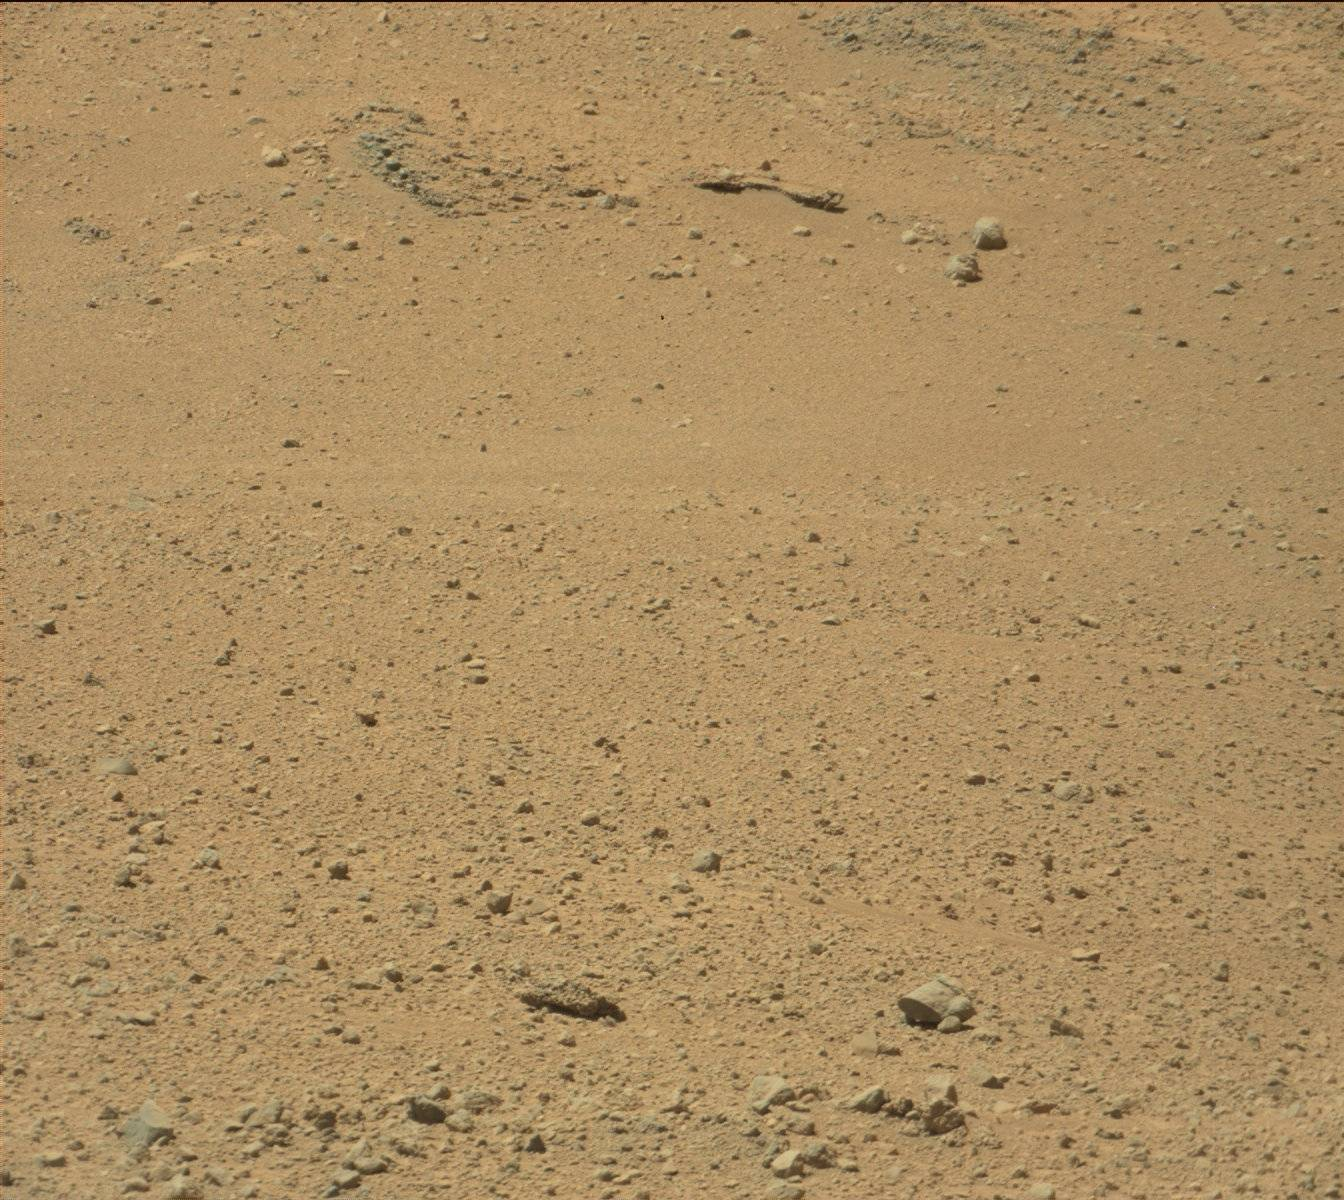 Carved cylinder found among artifacts on mars by curiosity